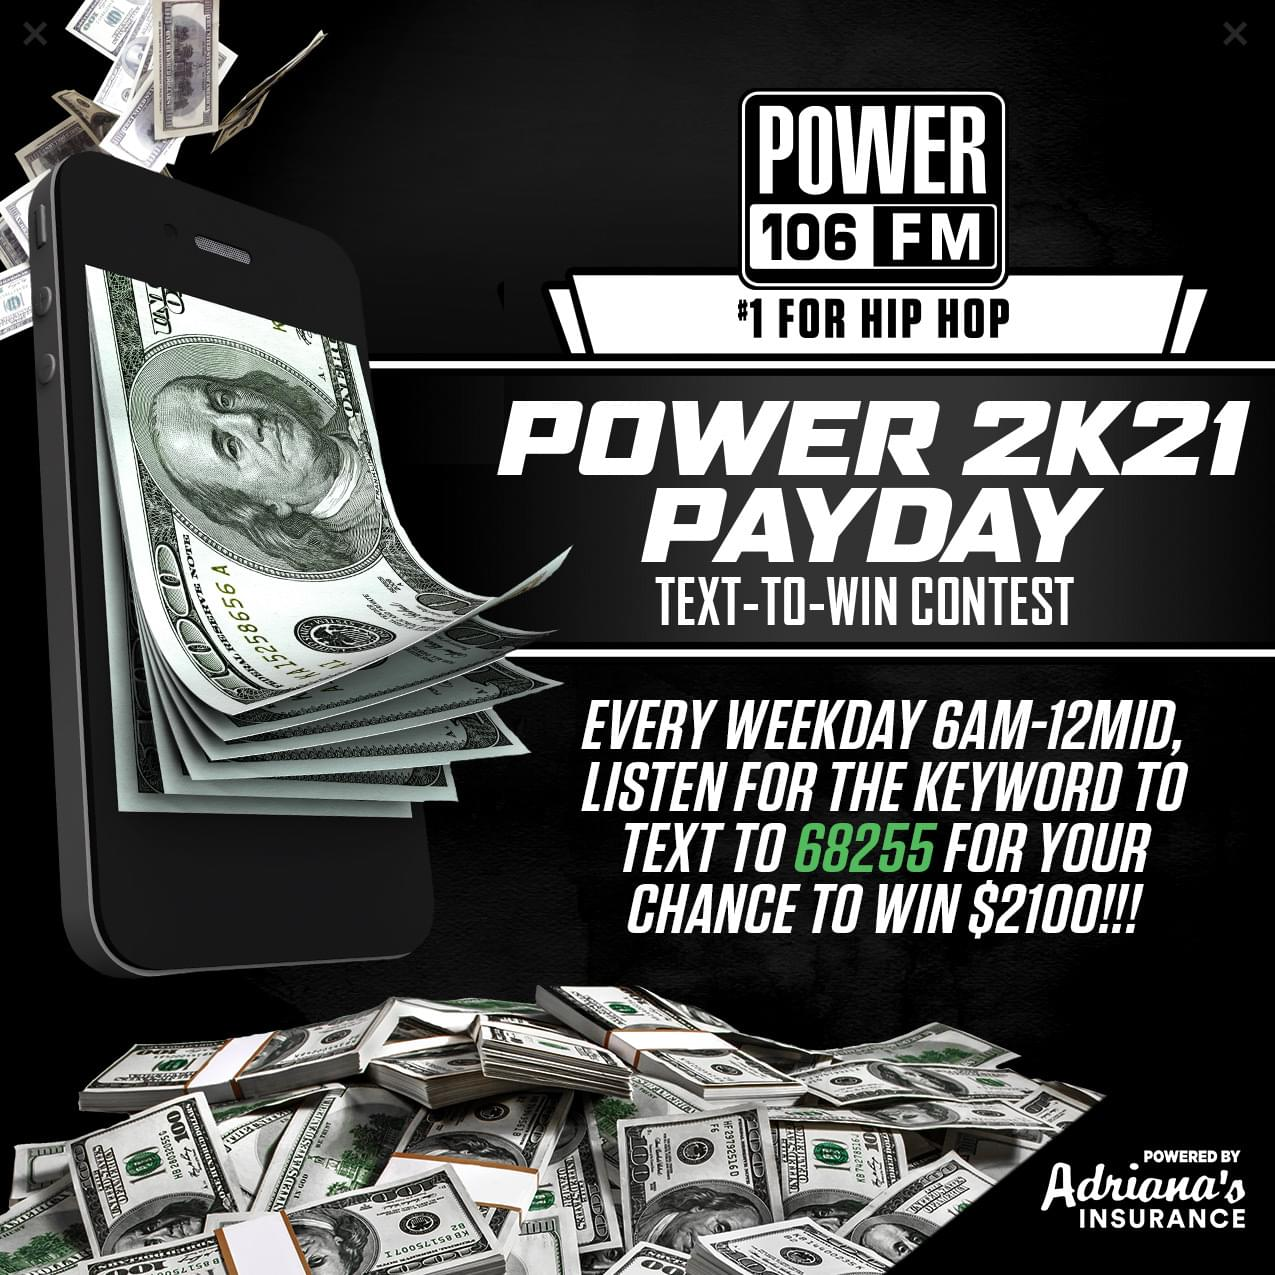 """Power 106's """"Power 2K21 Payday"""" Text-To-Win Contest!"""